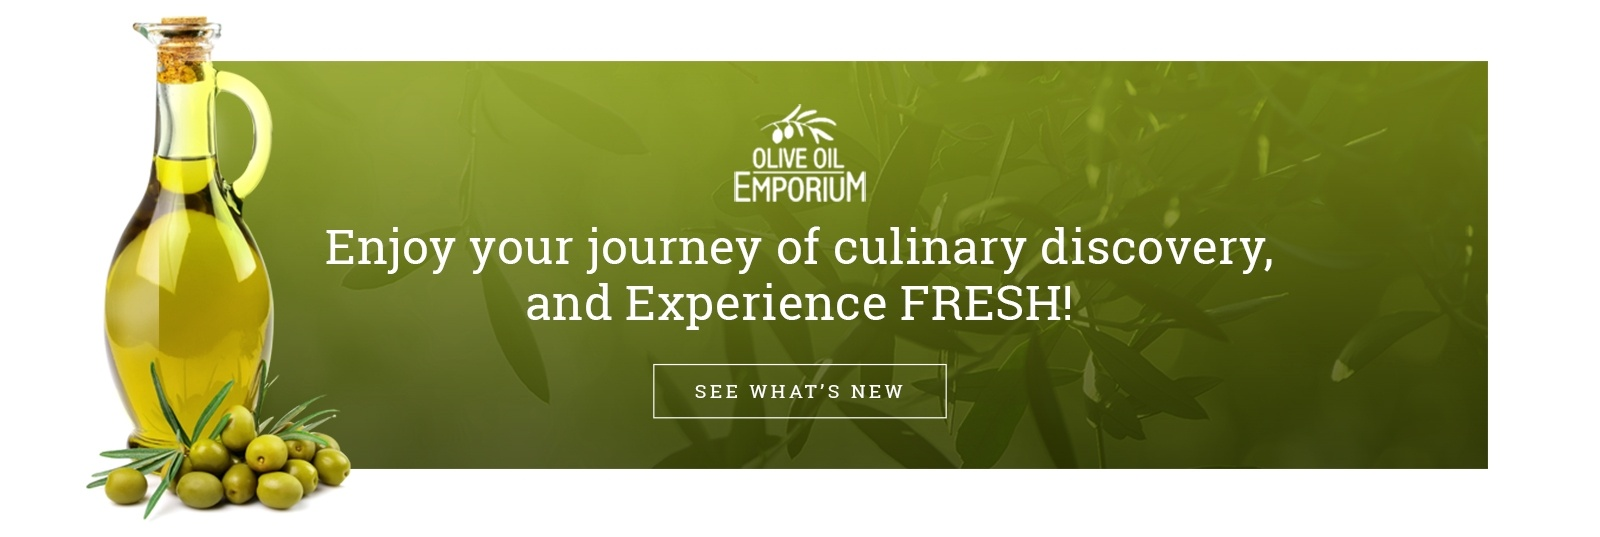 Enjoy your journey of culinary discovery, and experience fresh!